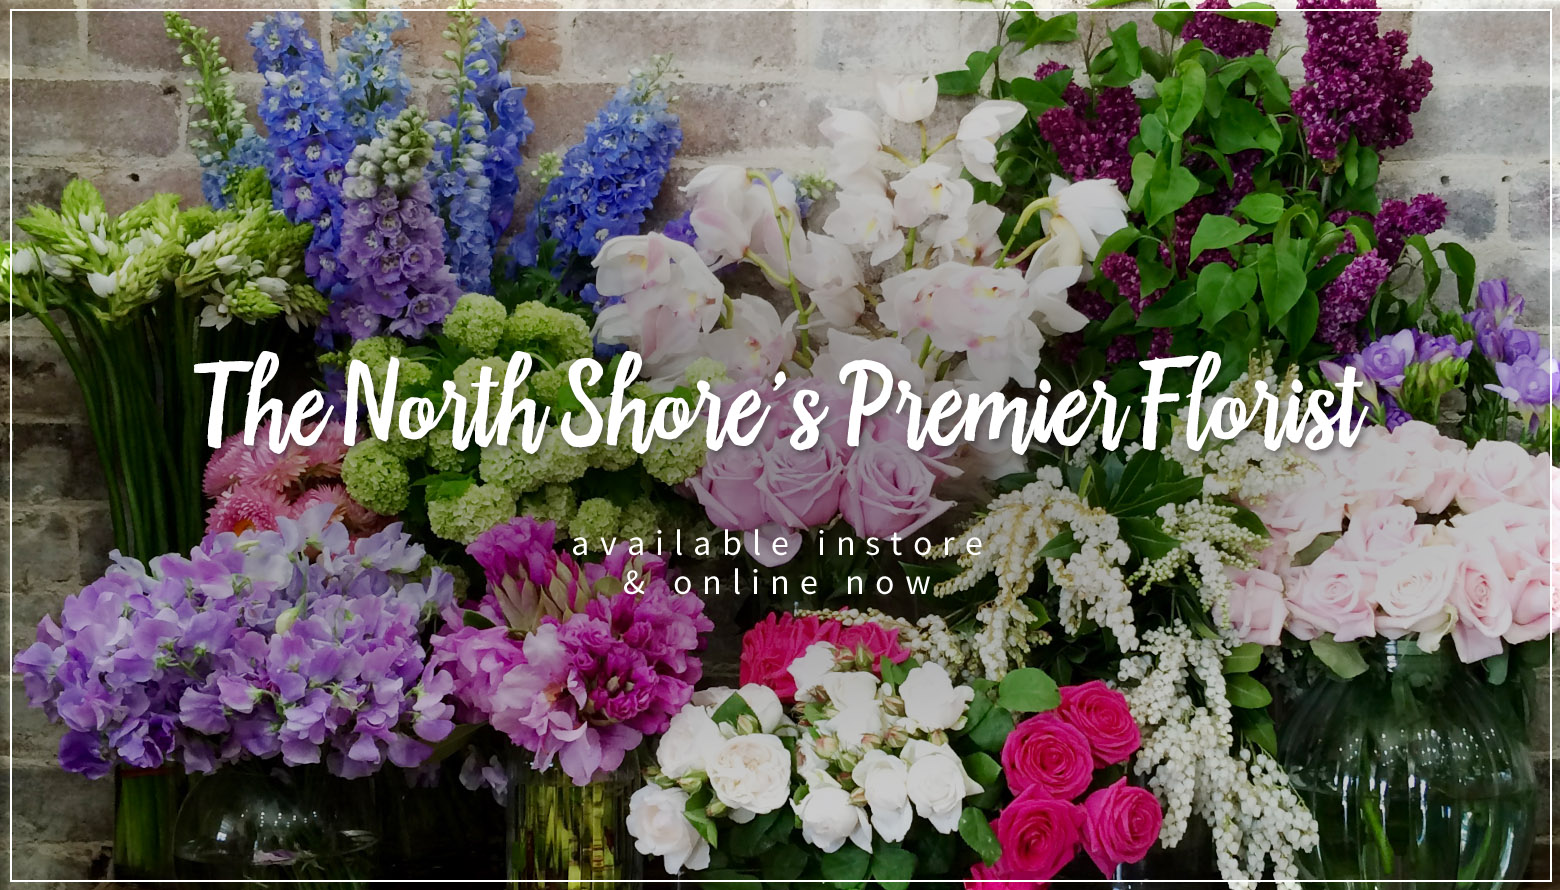 Kelvin hall floral designs premium flower delivery in pymble kelvin hall floral designs premium flower delivery in pymble gordon killara lane cove mosman north shore izmirmasajfo